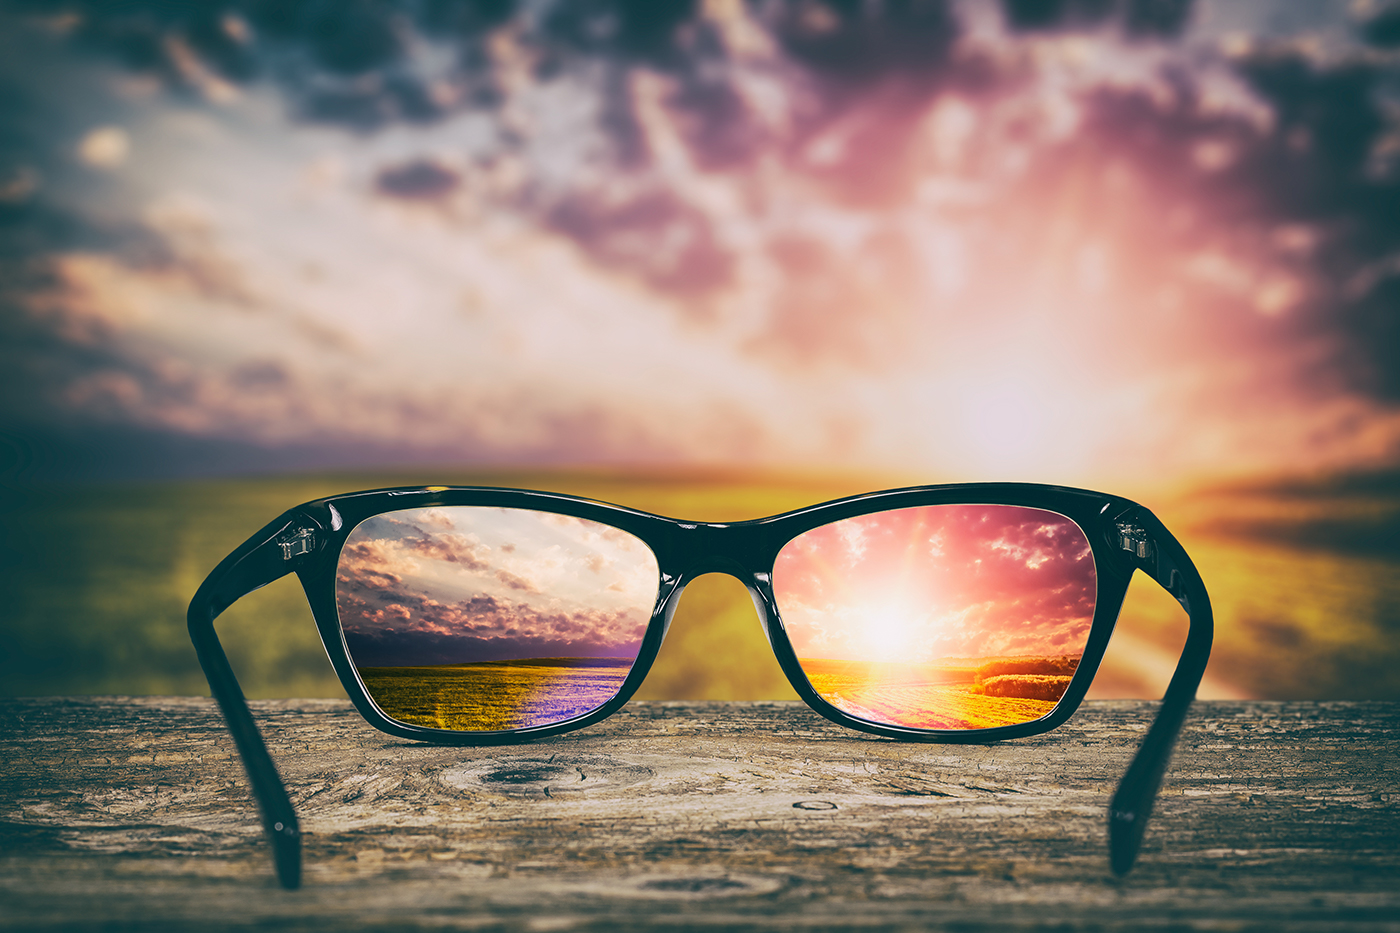 An out-of-focus view of a sunrise, with a focused version in the lenses of a pair of spectacles.